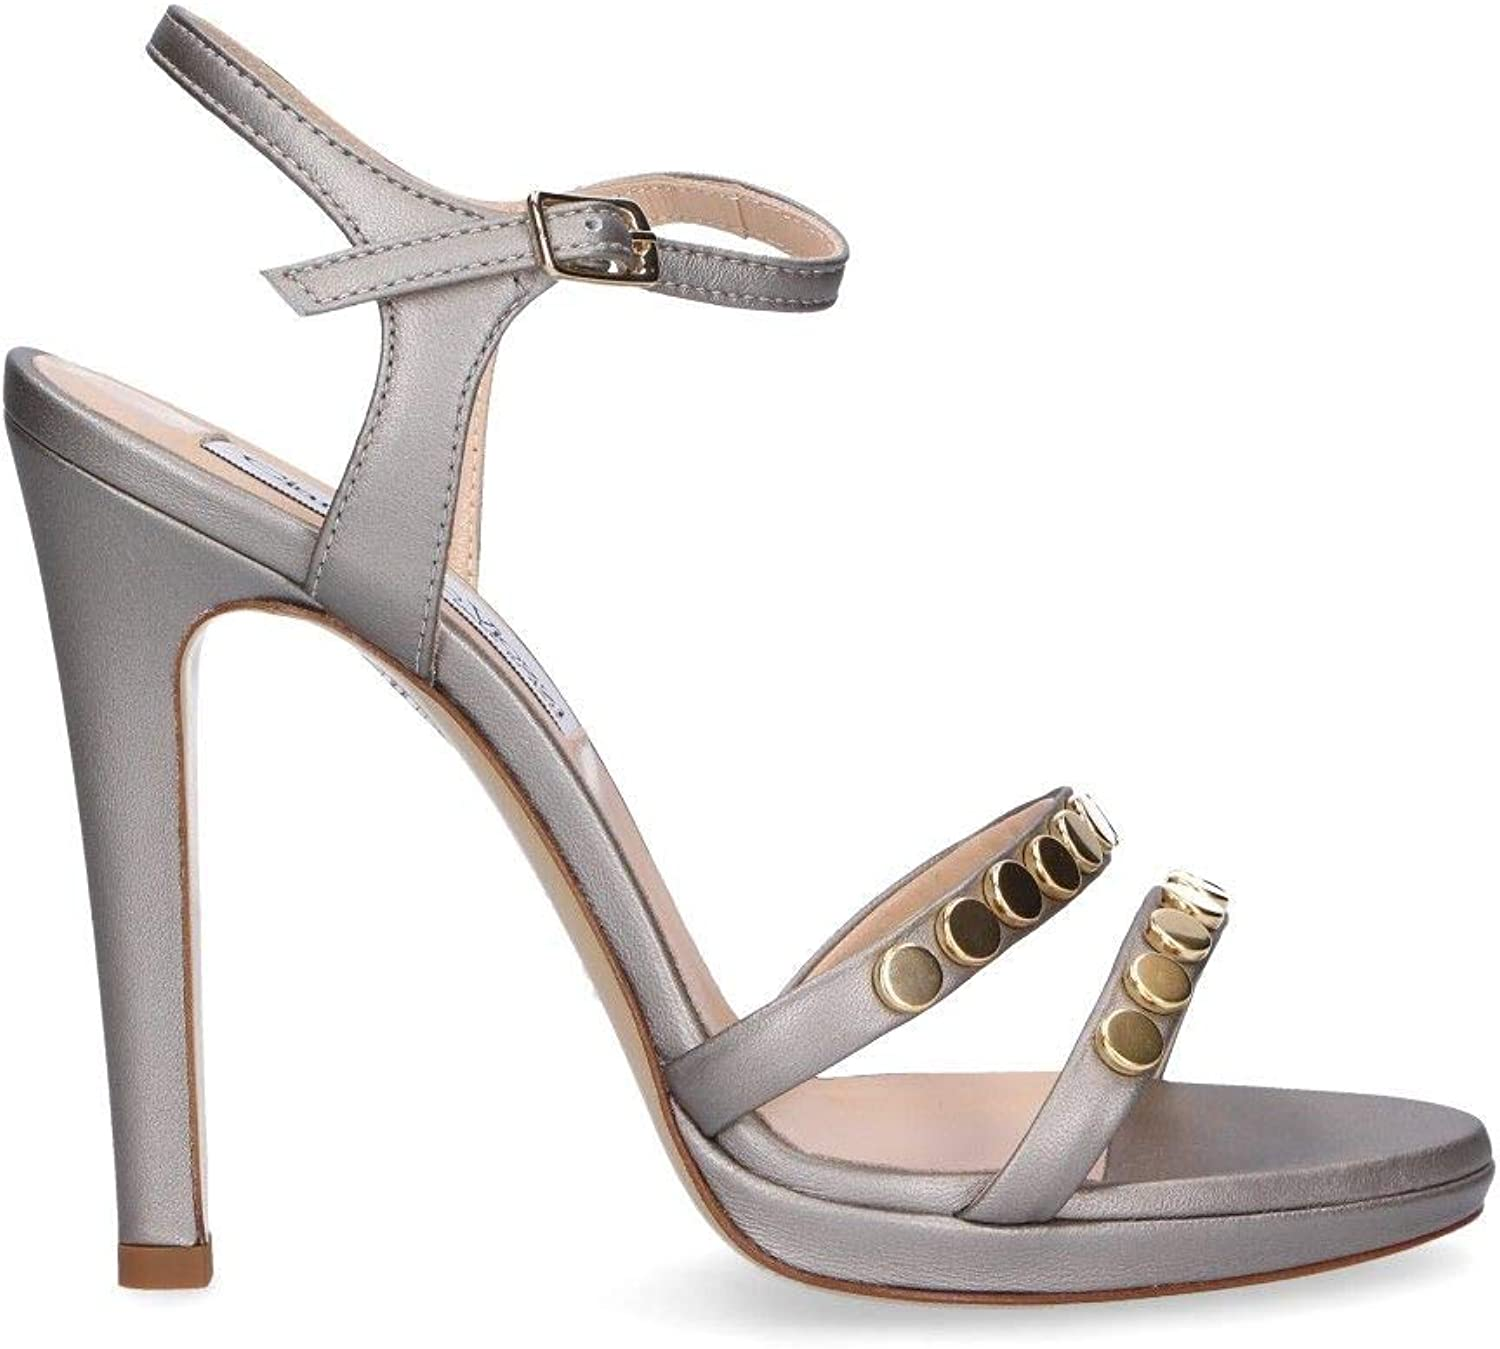 GIAMPAOLO VIOZZI Women's GL537A Silver Leather Sandals